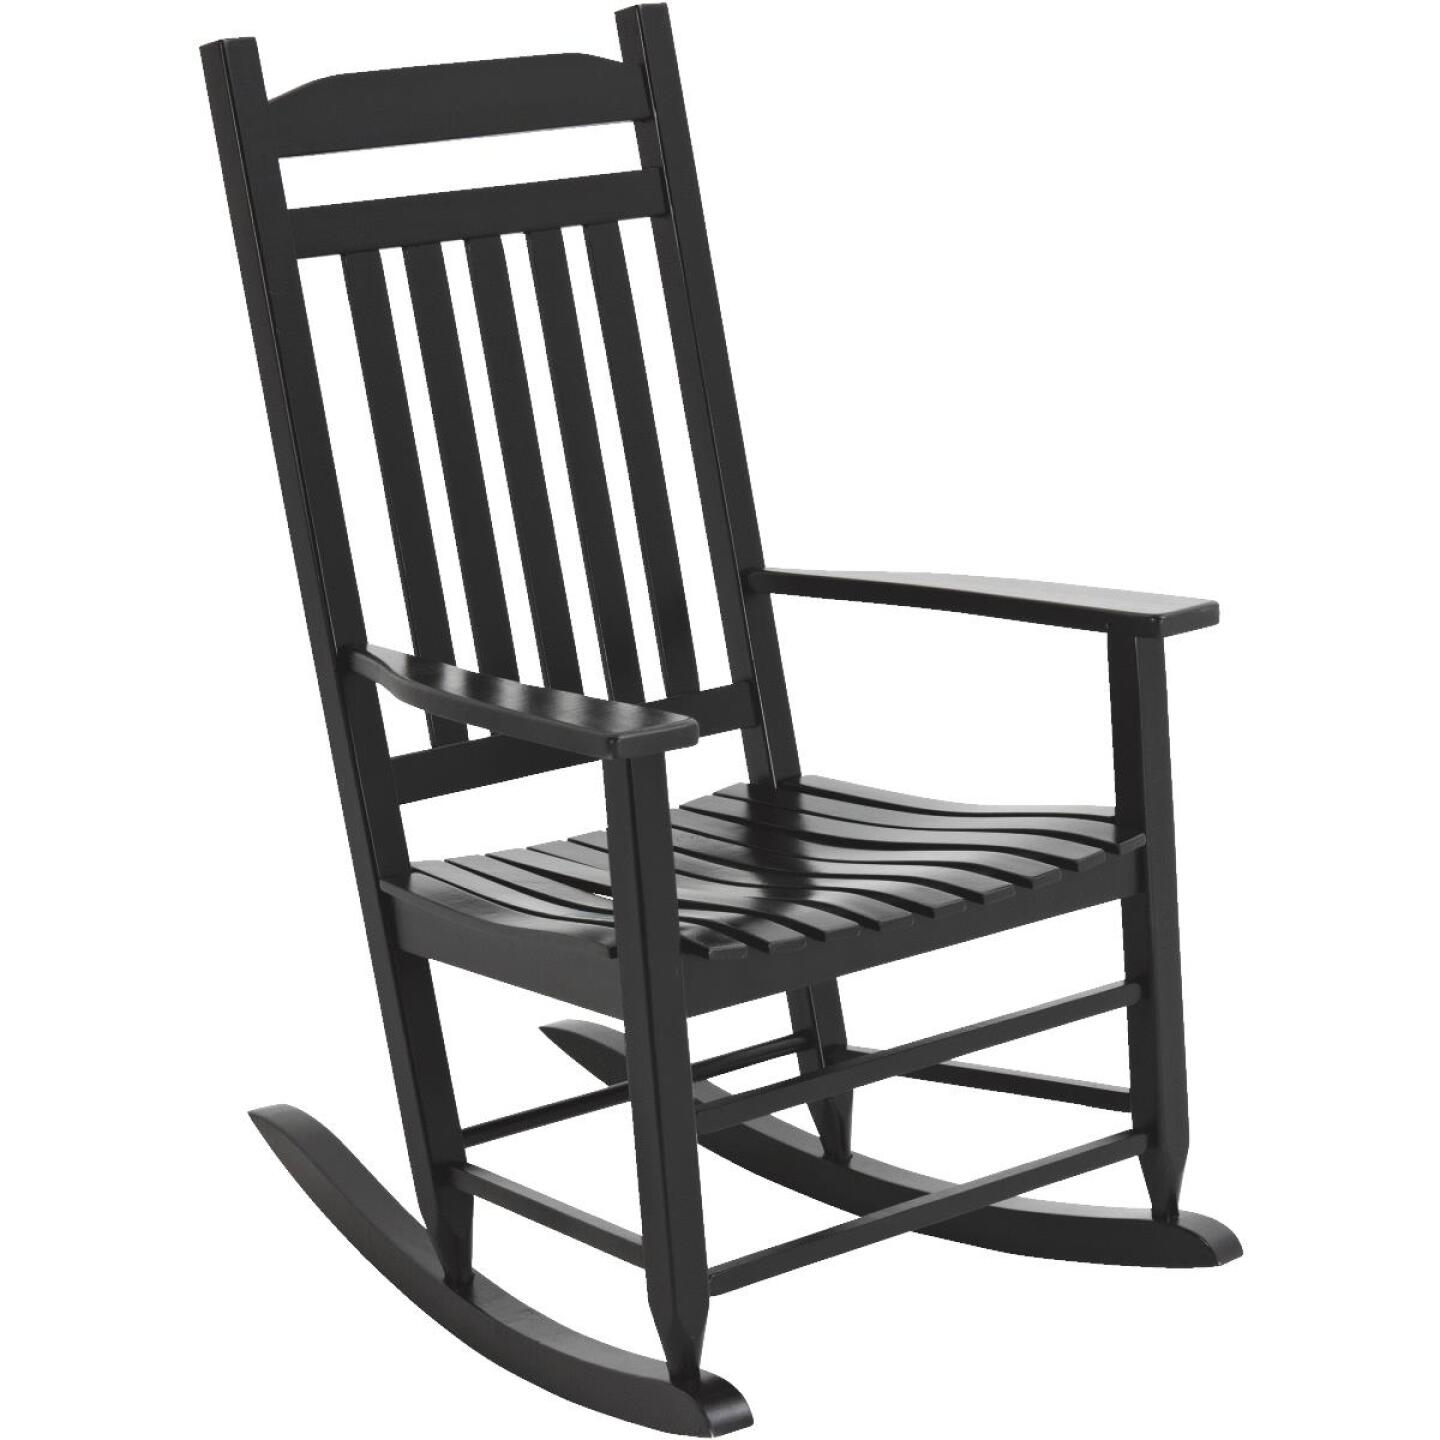 Knollwood Black Wood Mission Rocking Chair Image 1